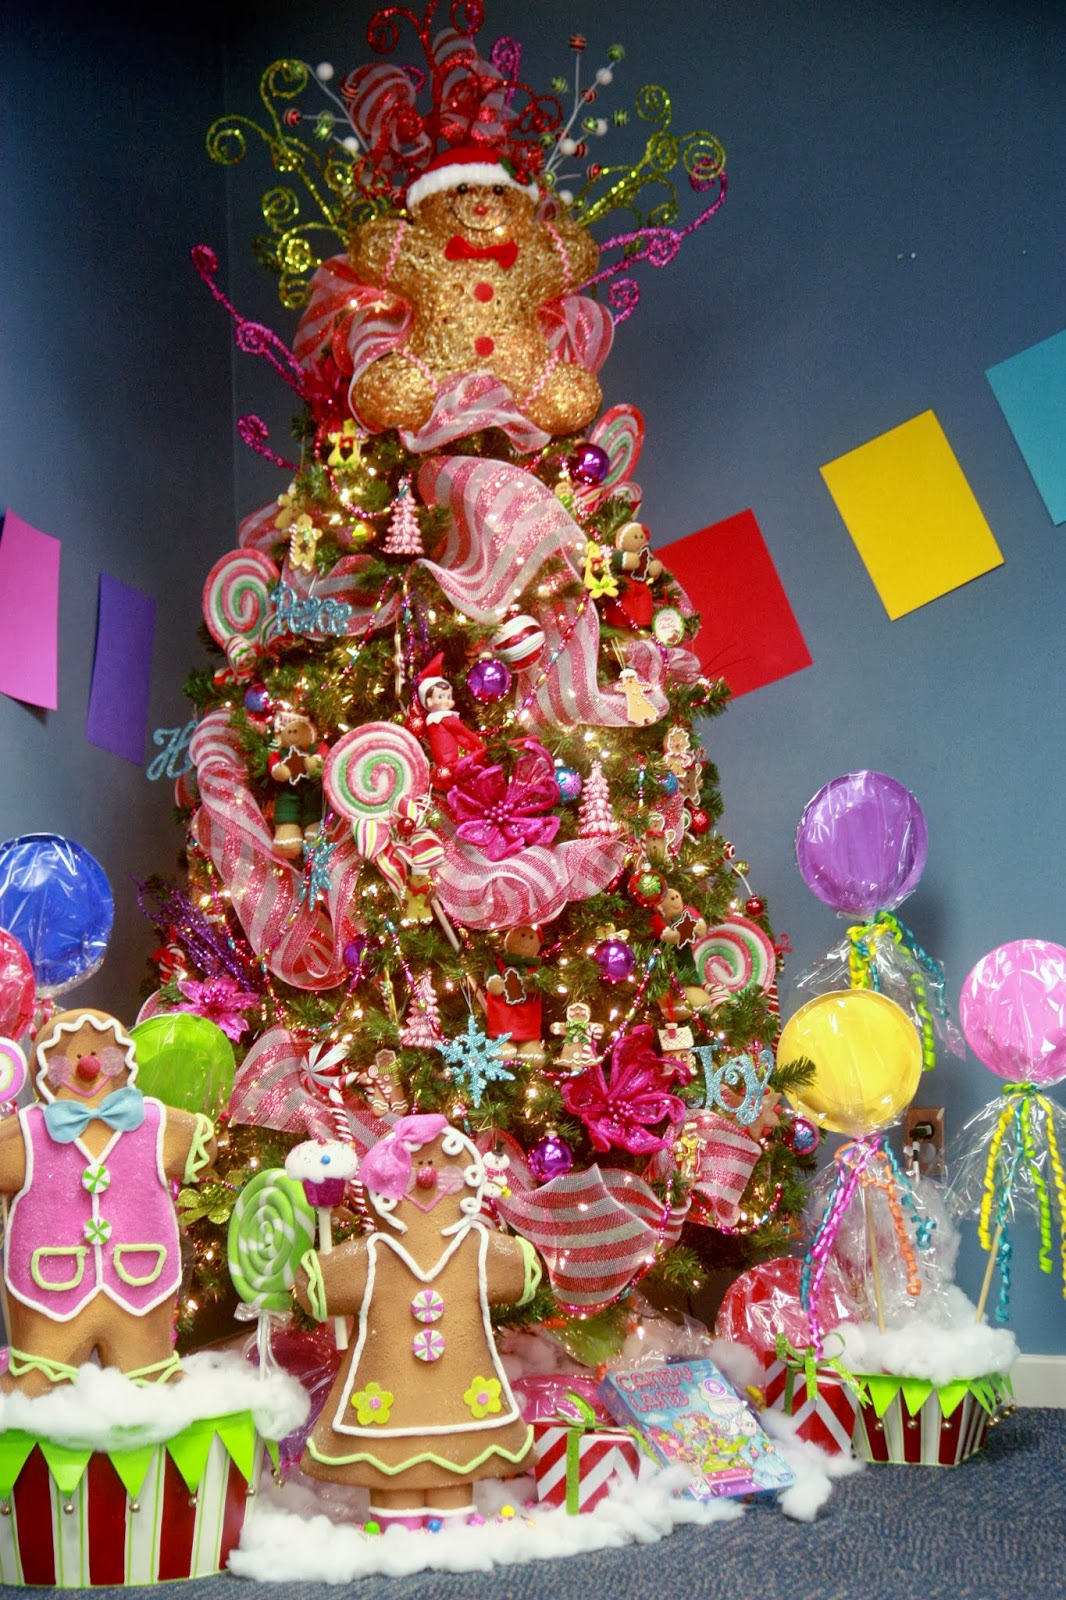 is this tree gorgeous or what love all the whimsical touches and the sweet gingerbread accents certainly over the top